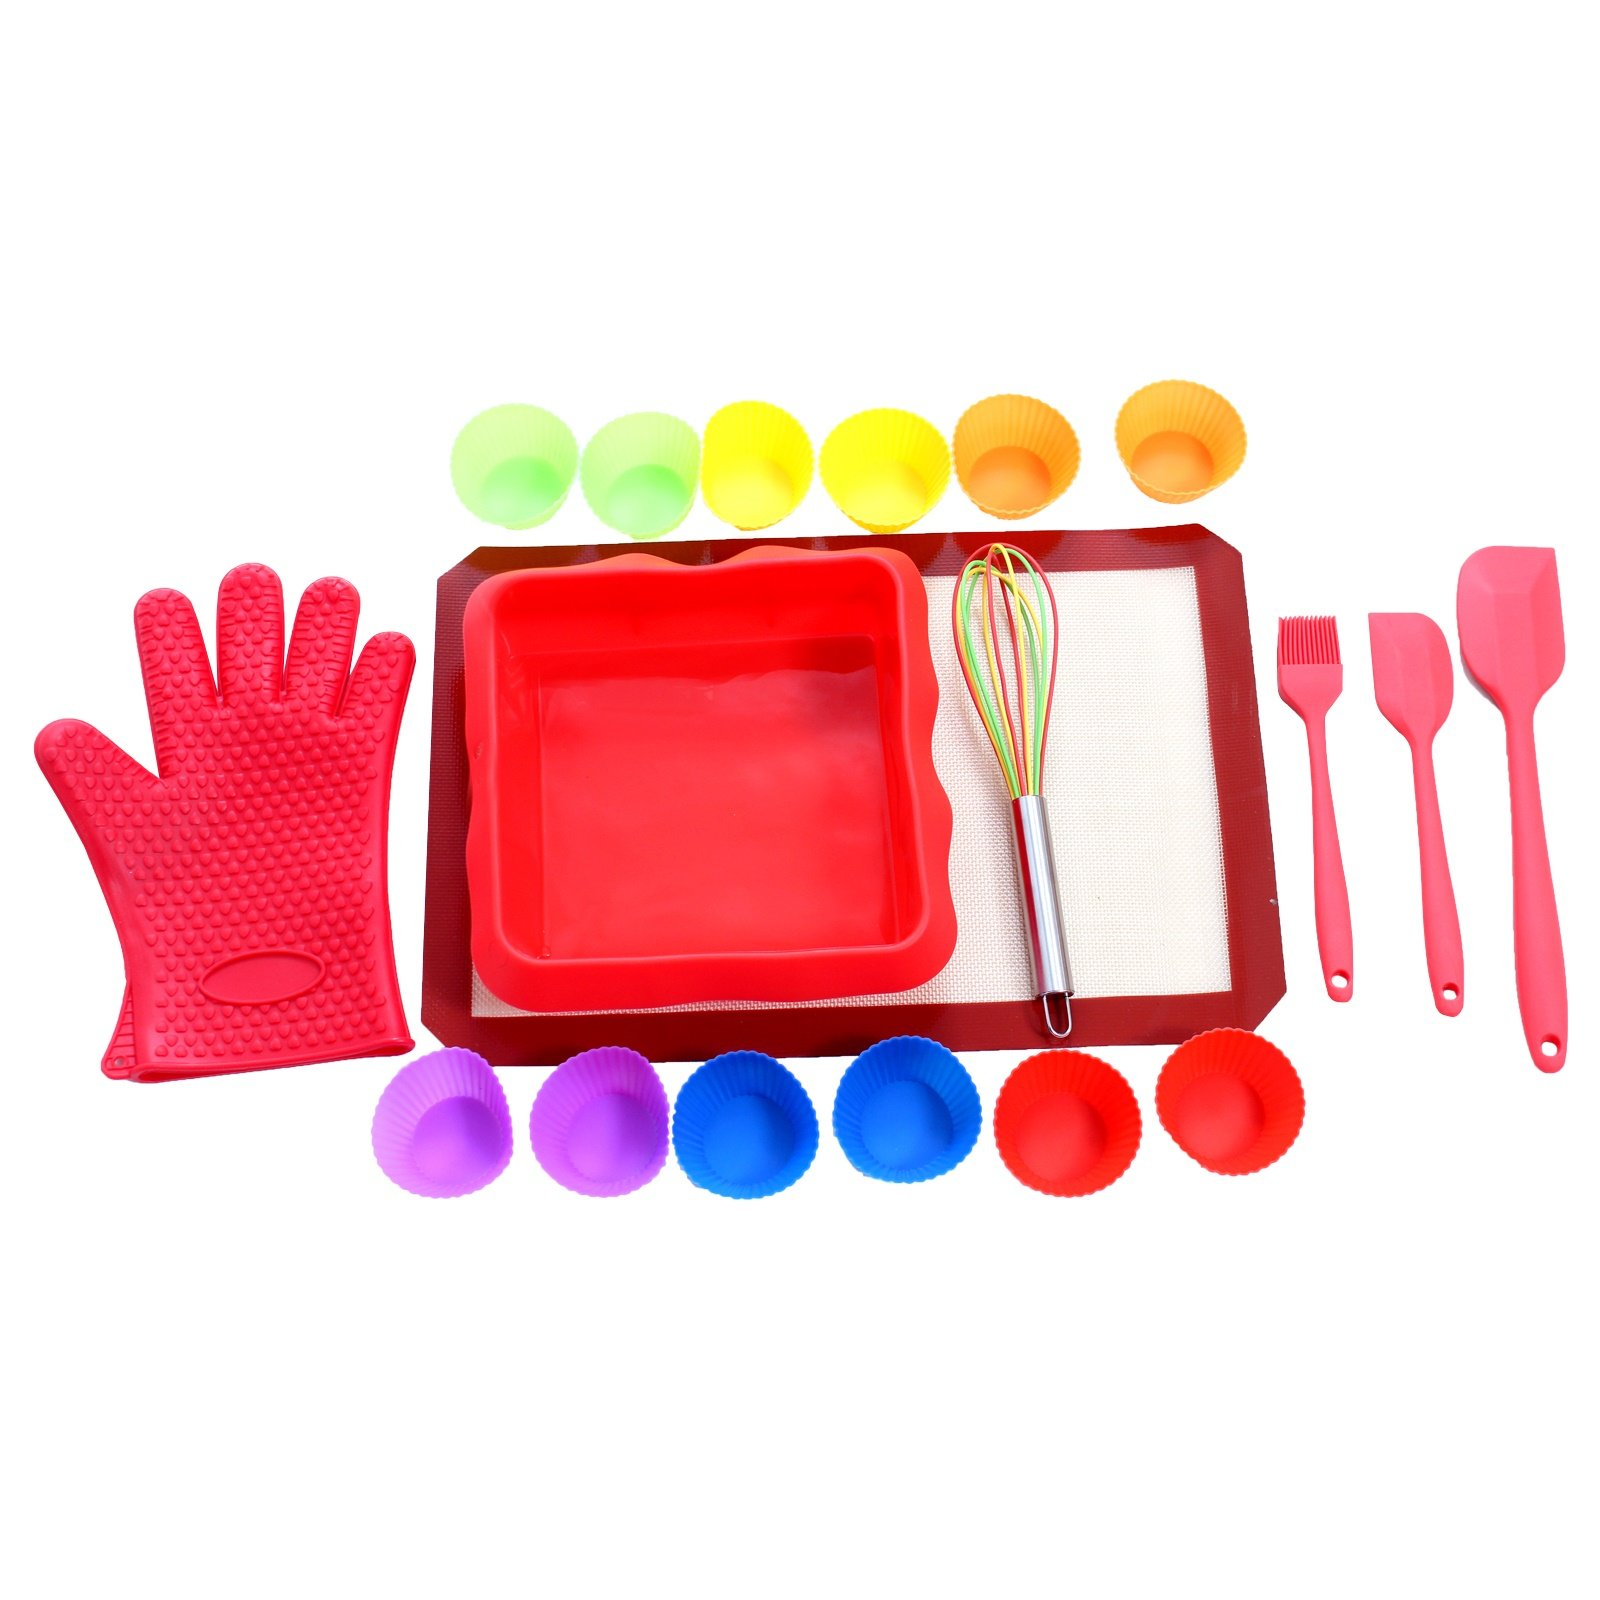 Baking Kit By UnicGlam Kids baking Set Girls Real Cupcake Making Kit One Complete Baking accessories for Beginners (Adult and Teens) and Professional Baking Lovers 19 Pieces Set